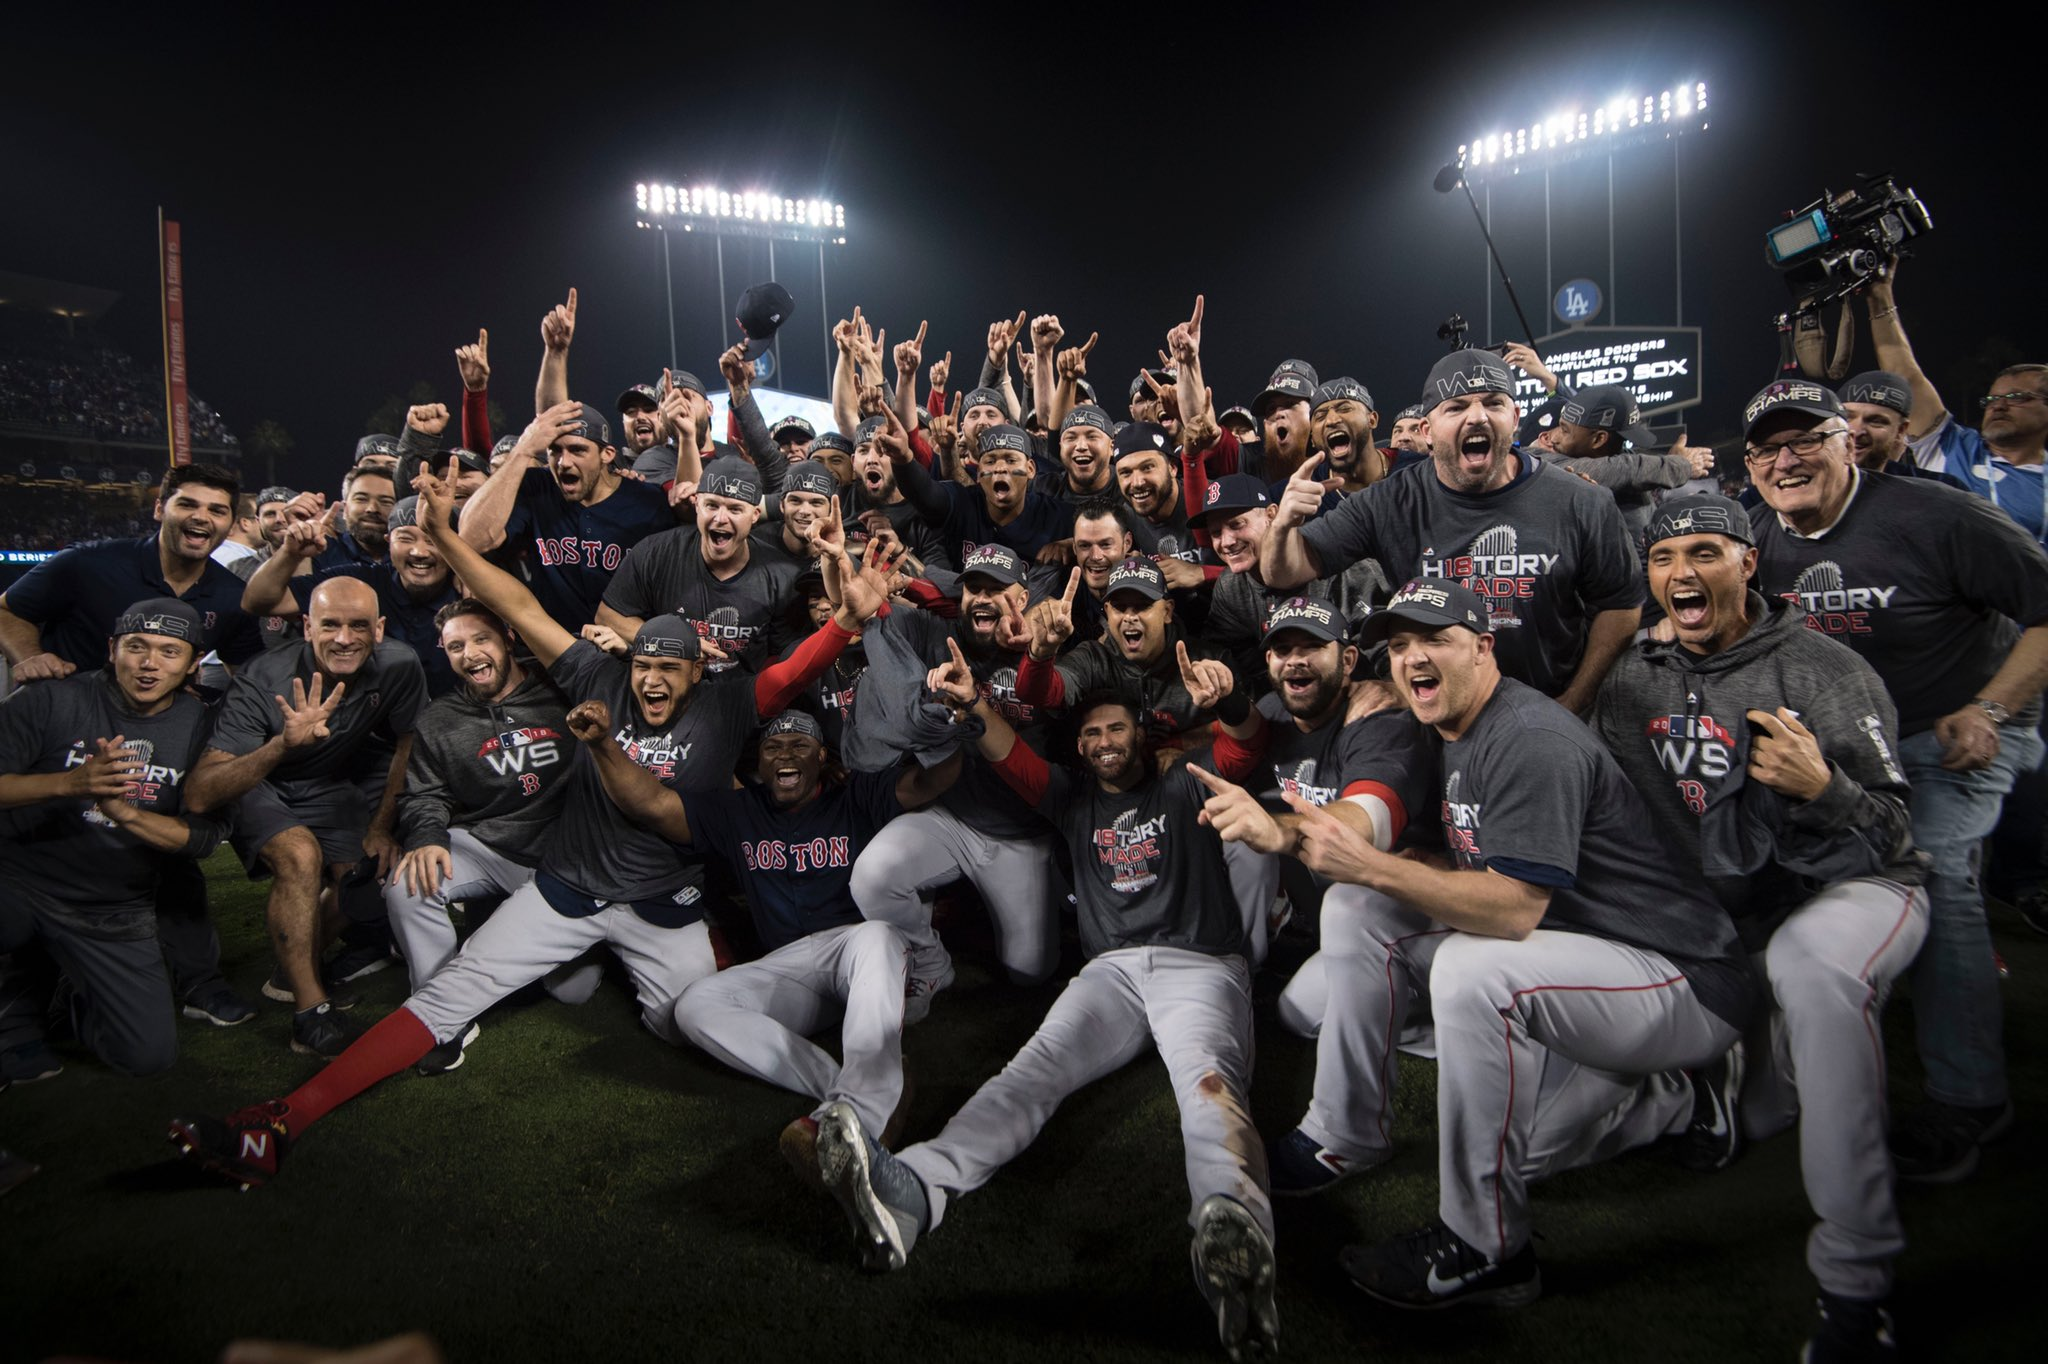 The Boston Red Sox Are Your 2018 World Series Champions!